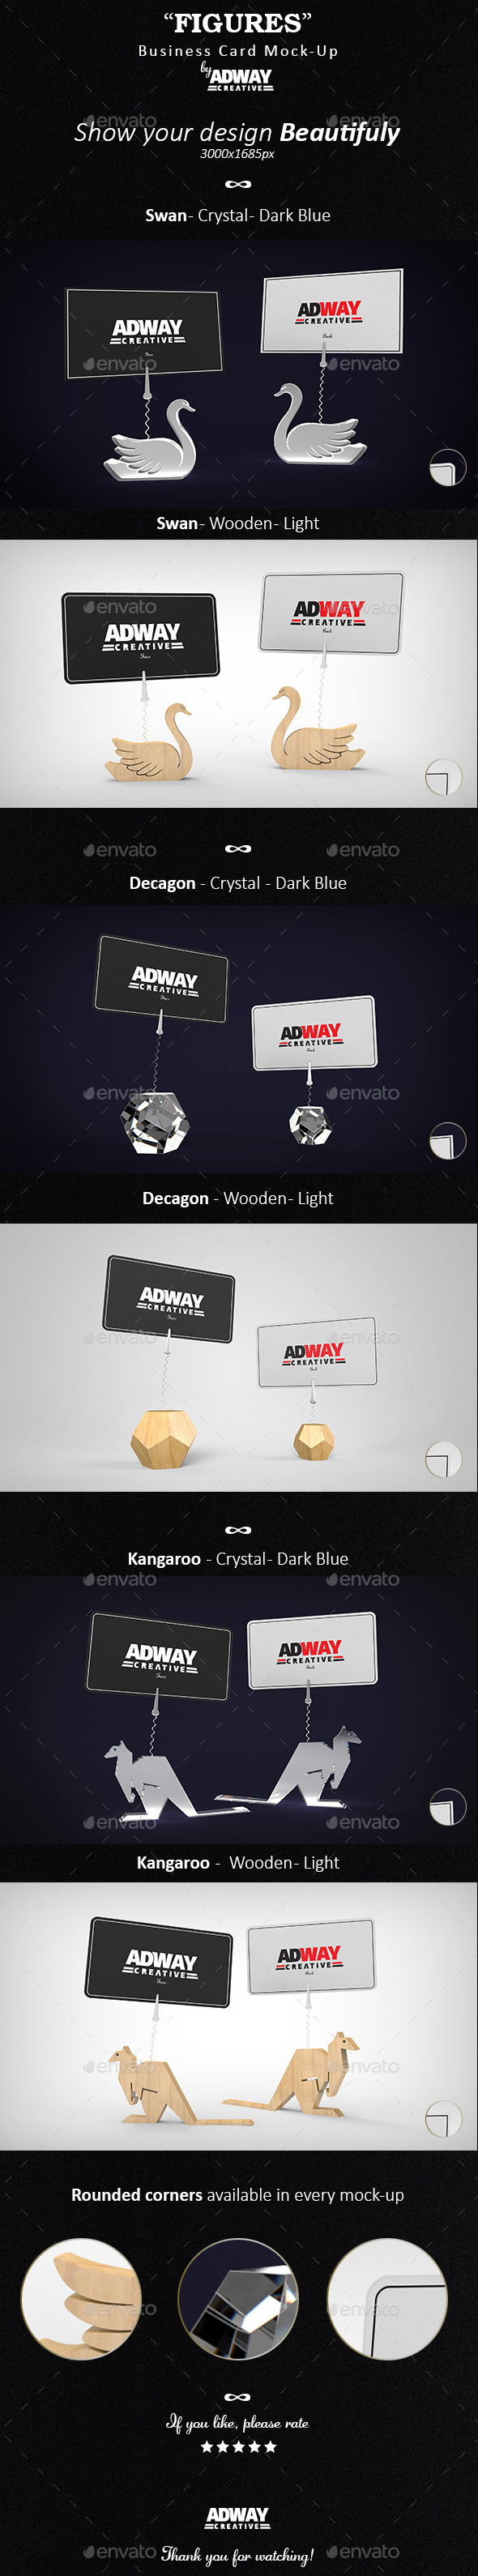 GraphicRiver Crystal and Wooded Figures Business Card Mockup 10833770